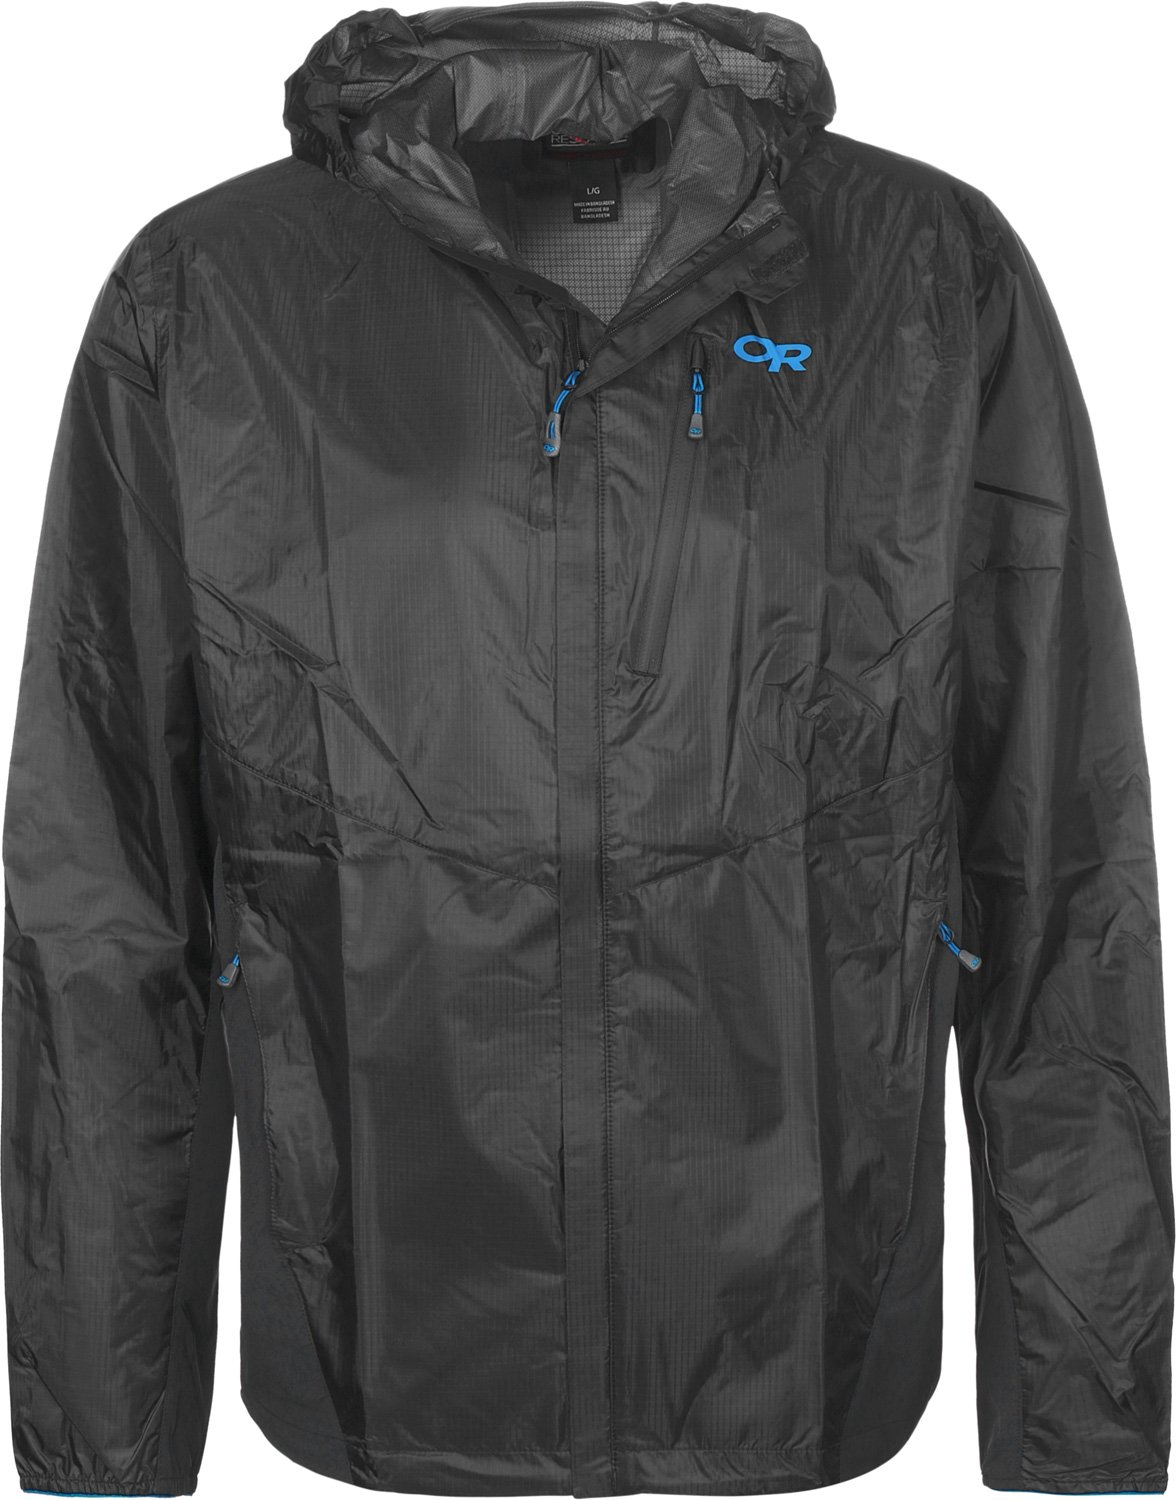 Outdoor Research Helium Hybrid Hooded Jacket - Men's Black XL by Outdoor Research